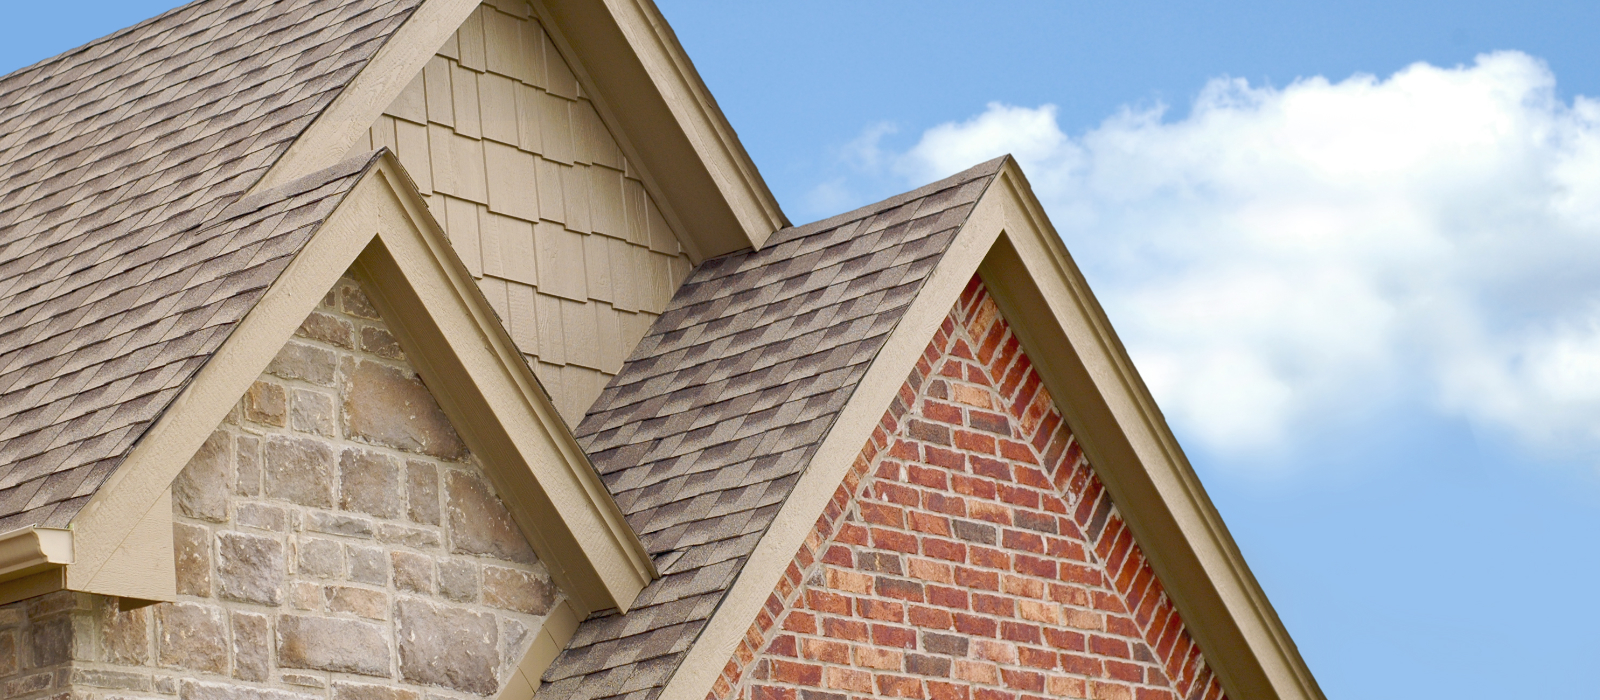 Roofing in West Yorkshire